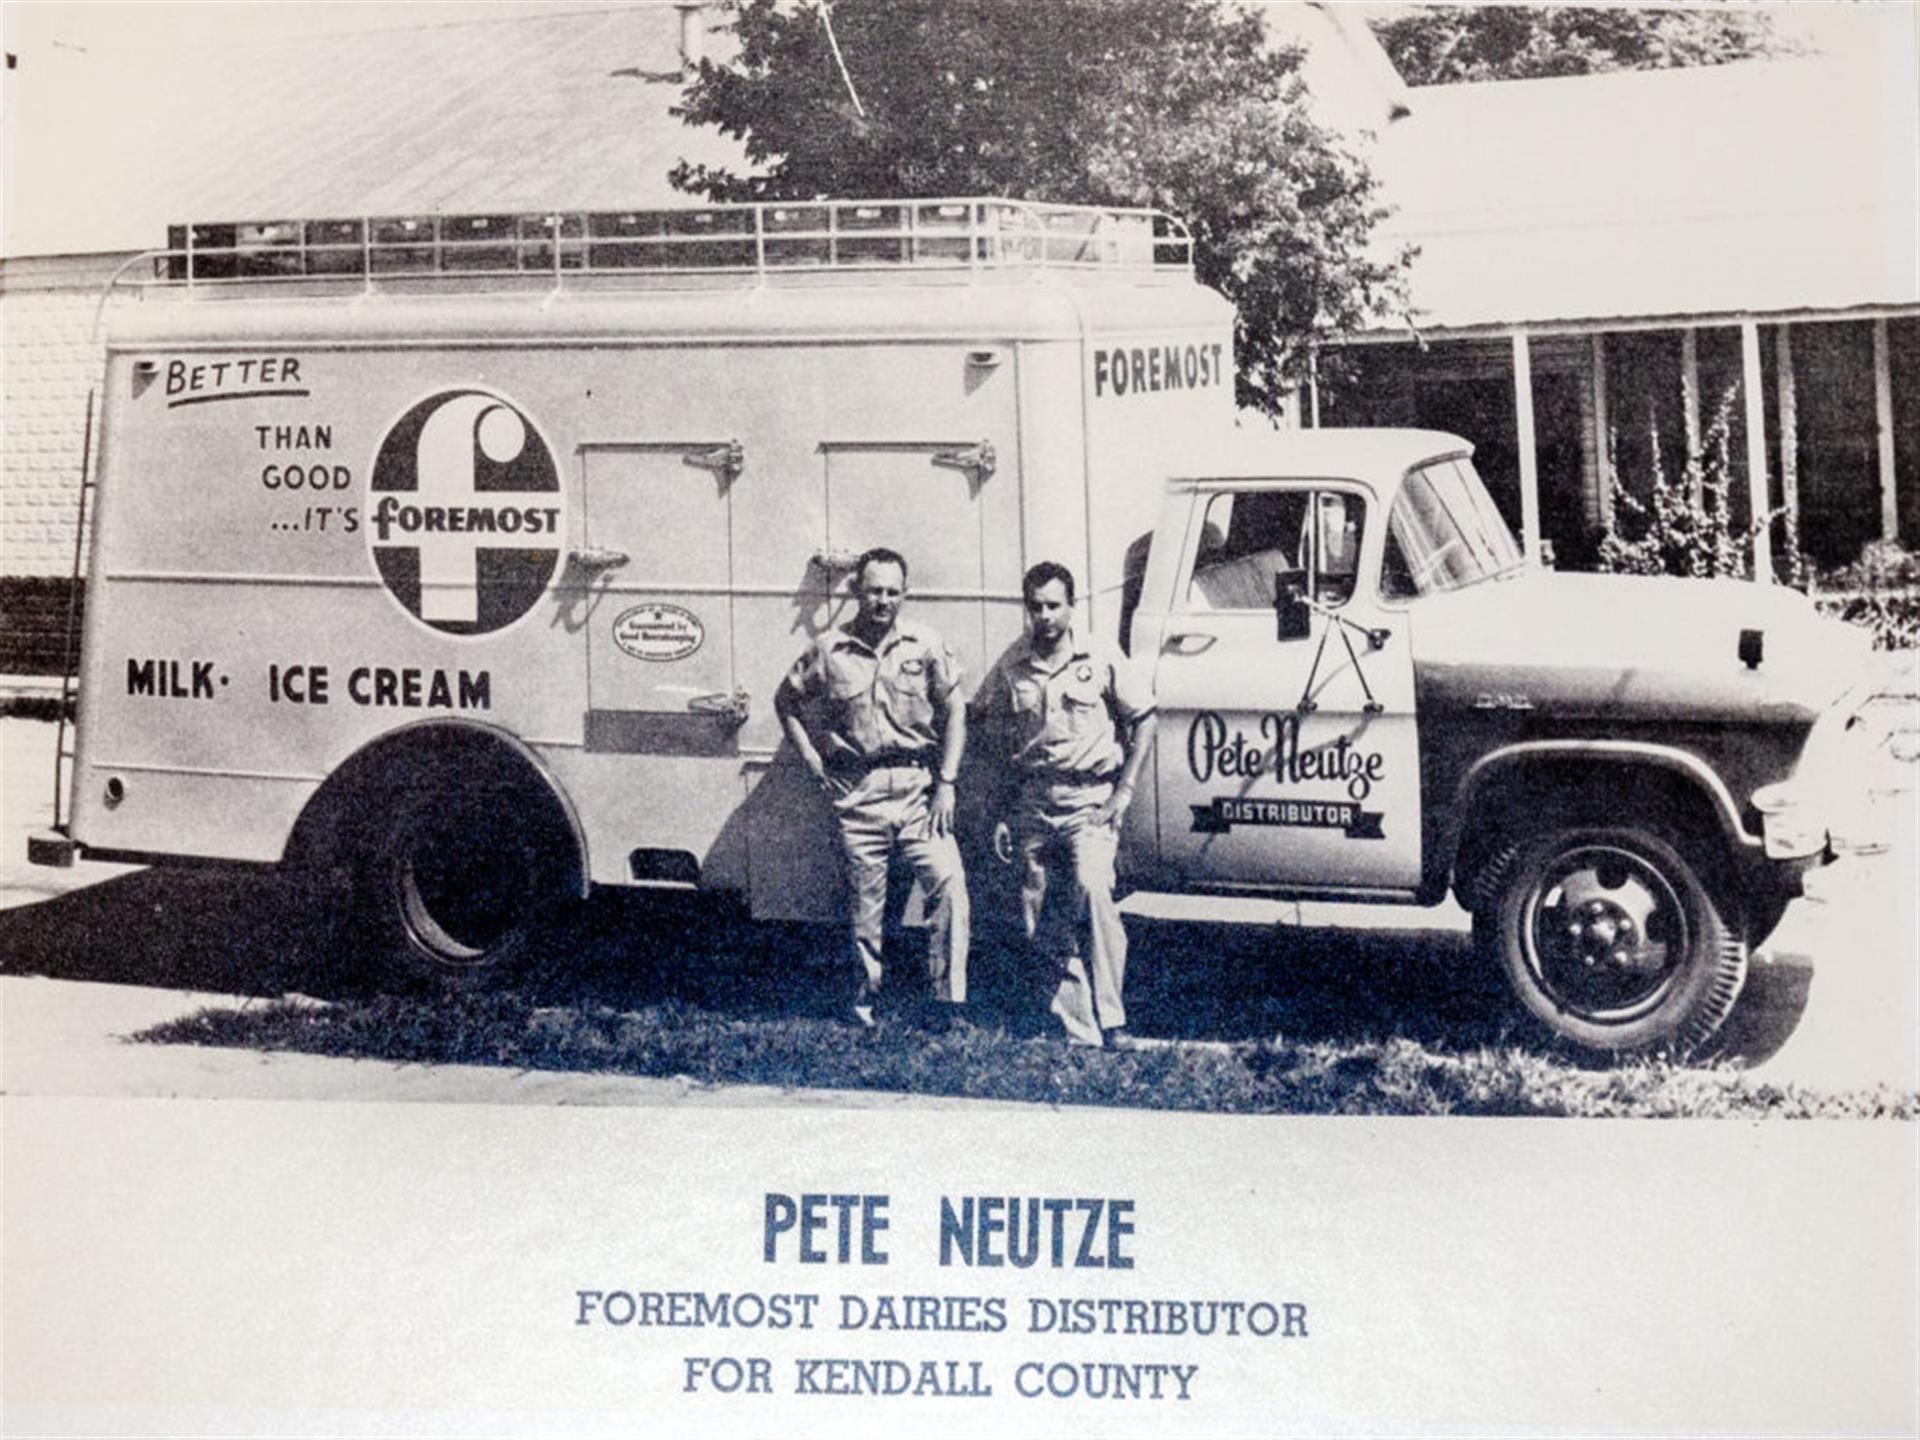 vintage photo of pete neutze standing in front of foremost dairies distributor truck